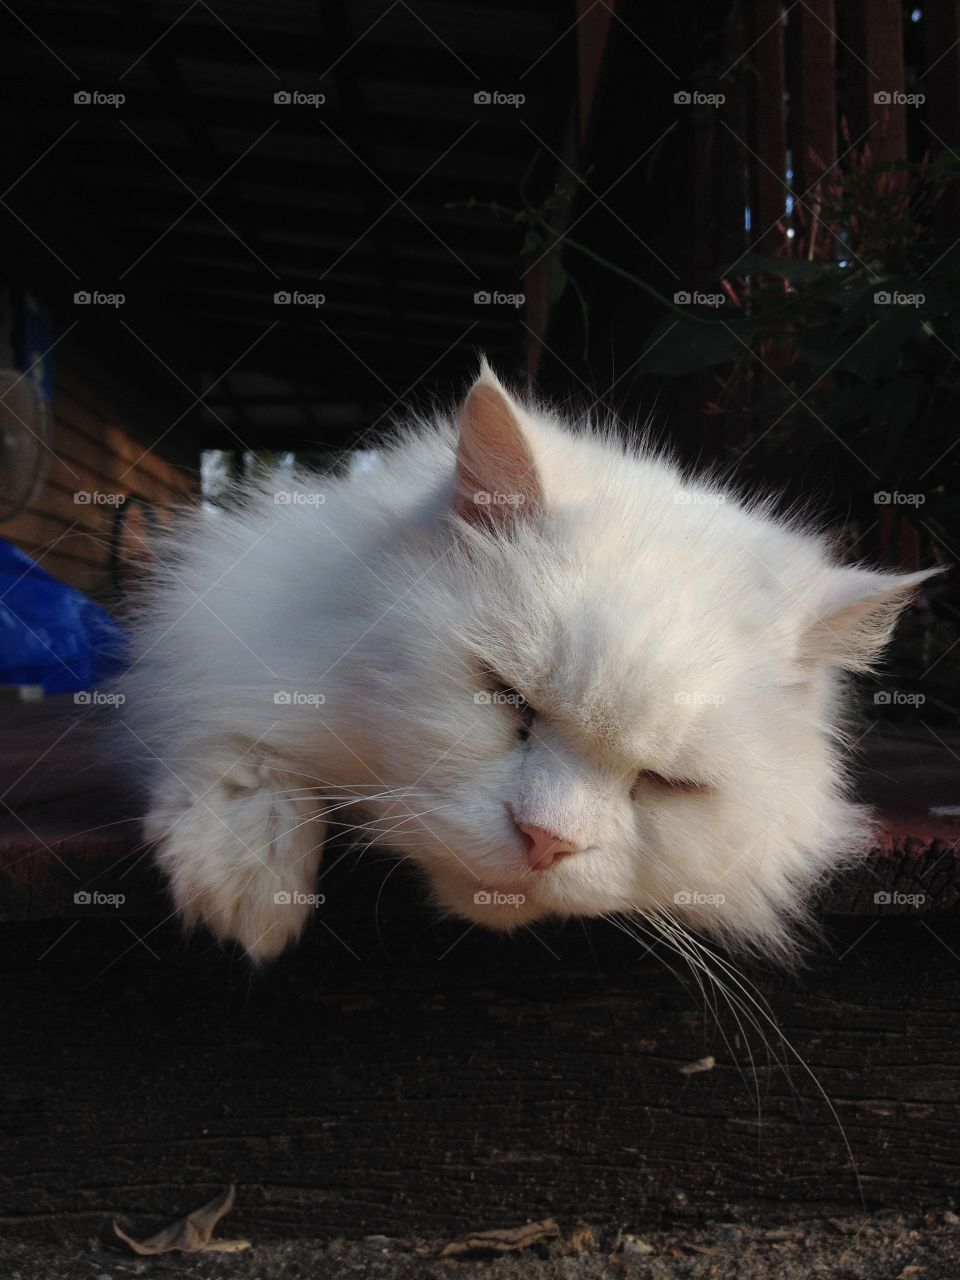 Close-up of a white cat sleeping